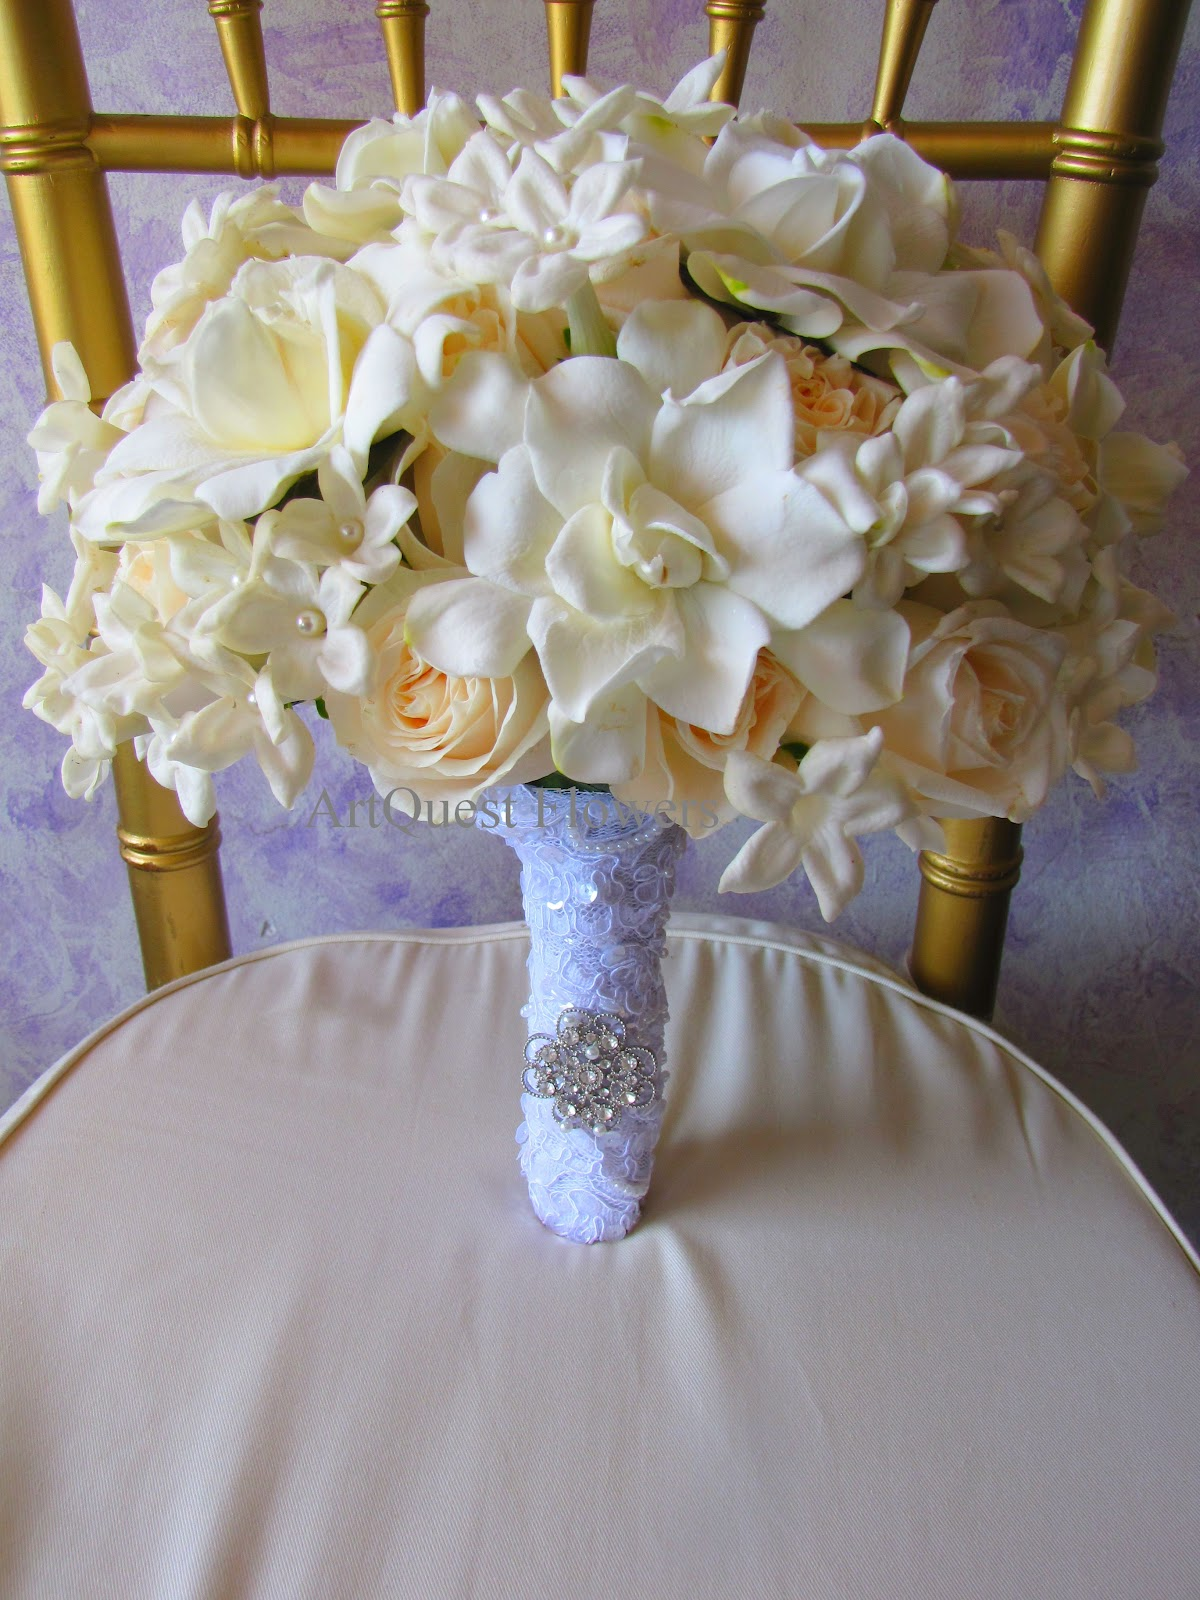 ... Mar, Wedding Florist and Planner Indian Wedding Planner and Florist